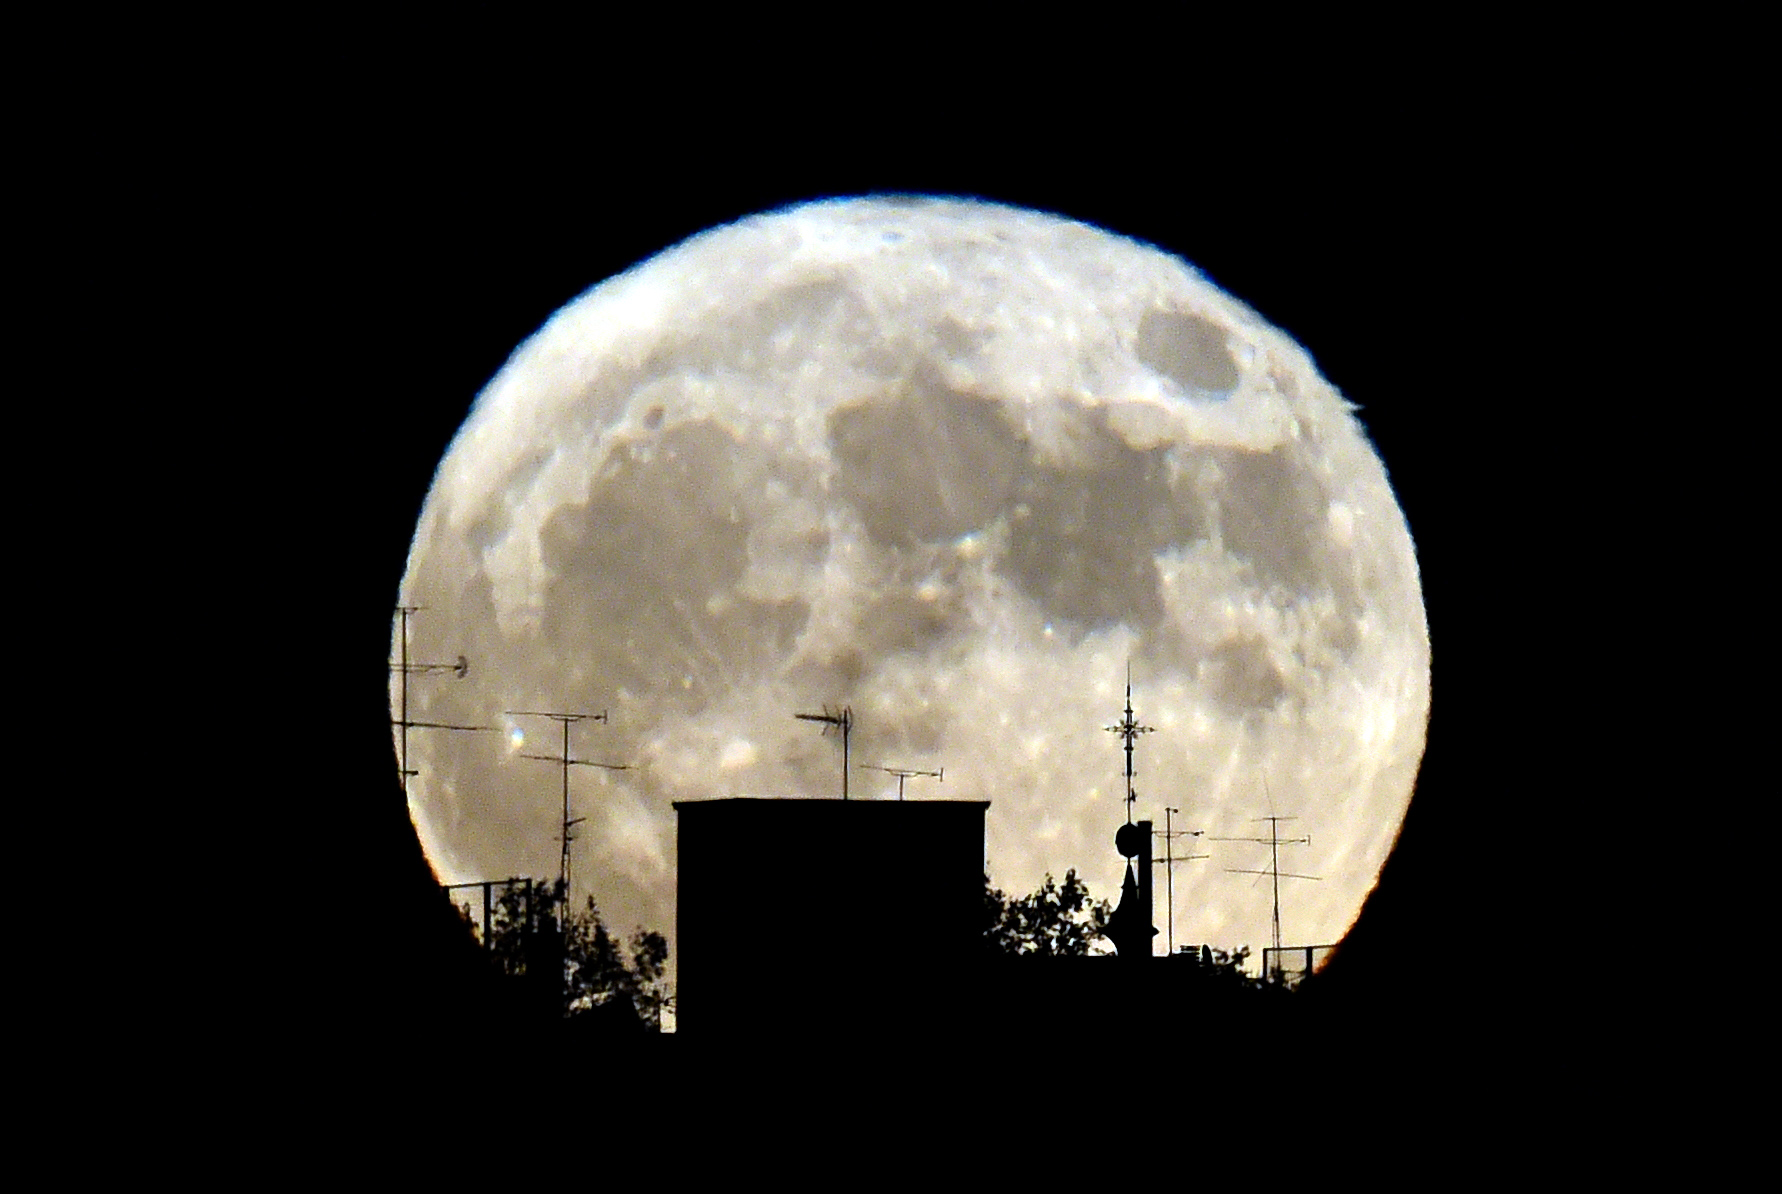 The supermoon from November 2016